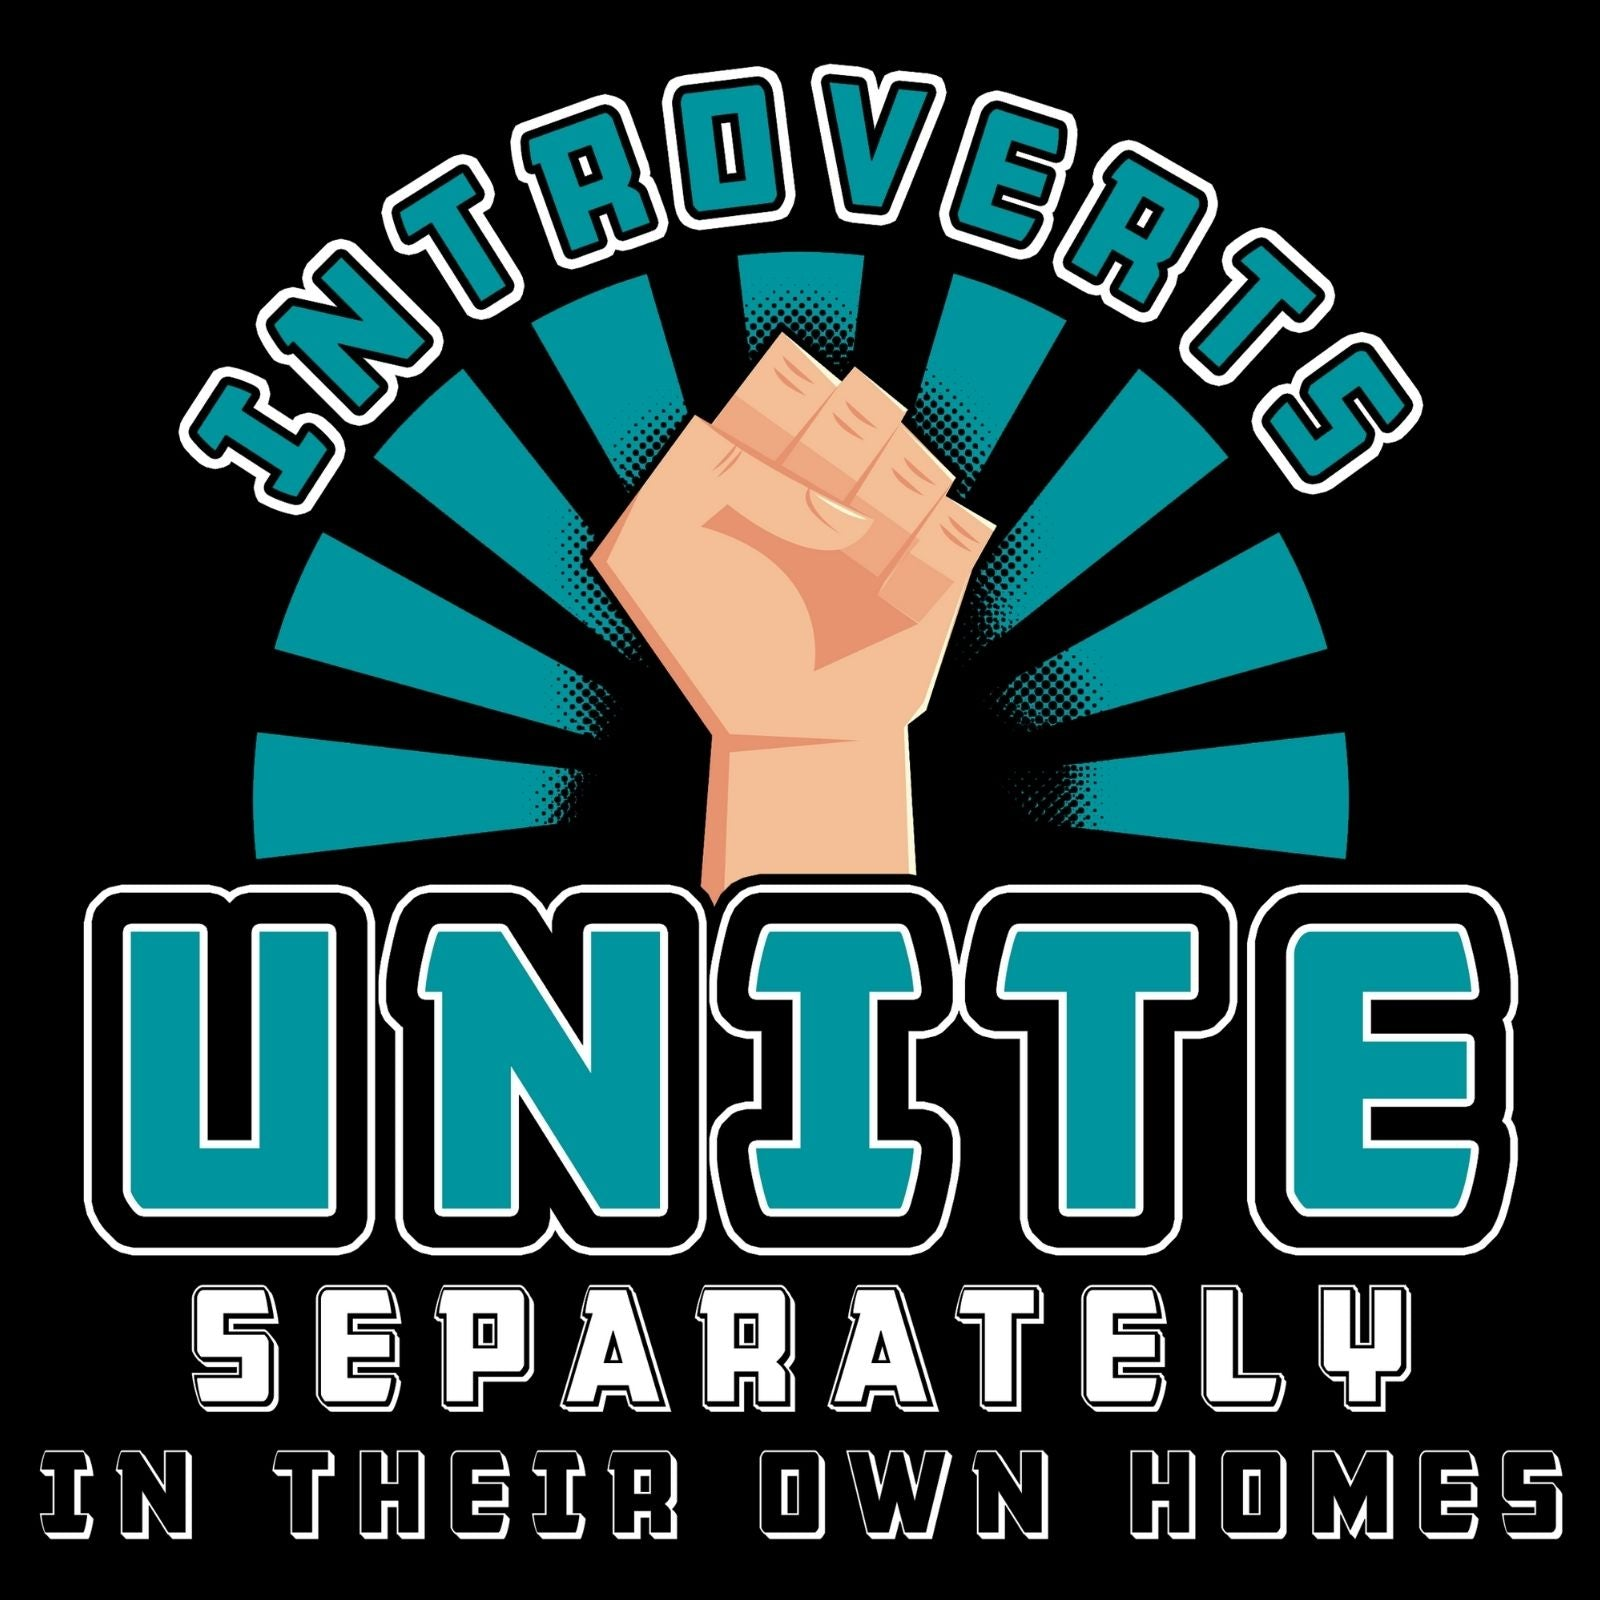 Introverts Unite Separately In Their Own Homes - Bastard Graphics